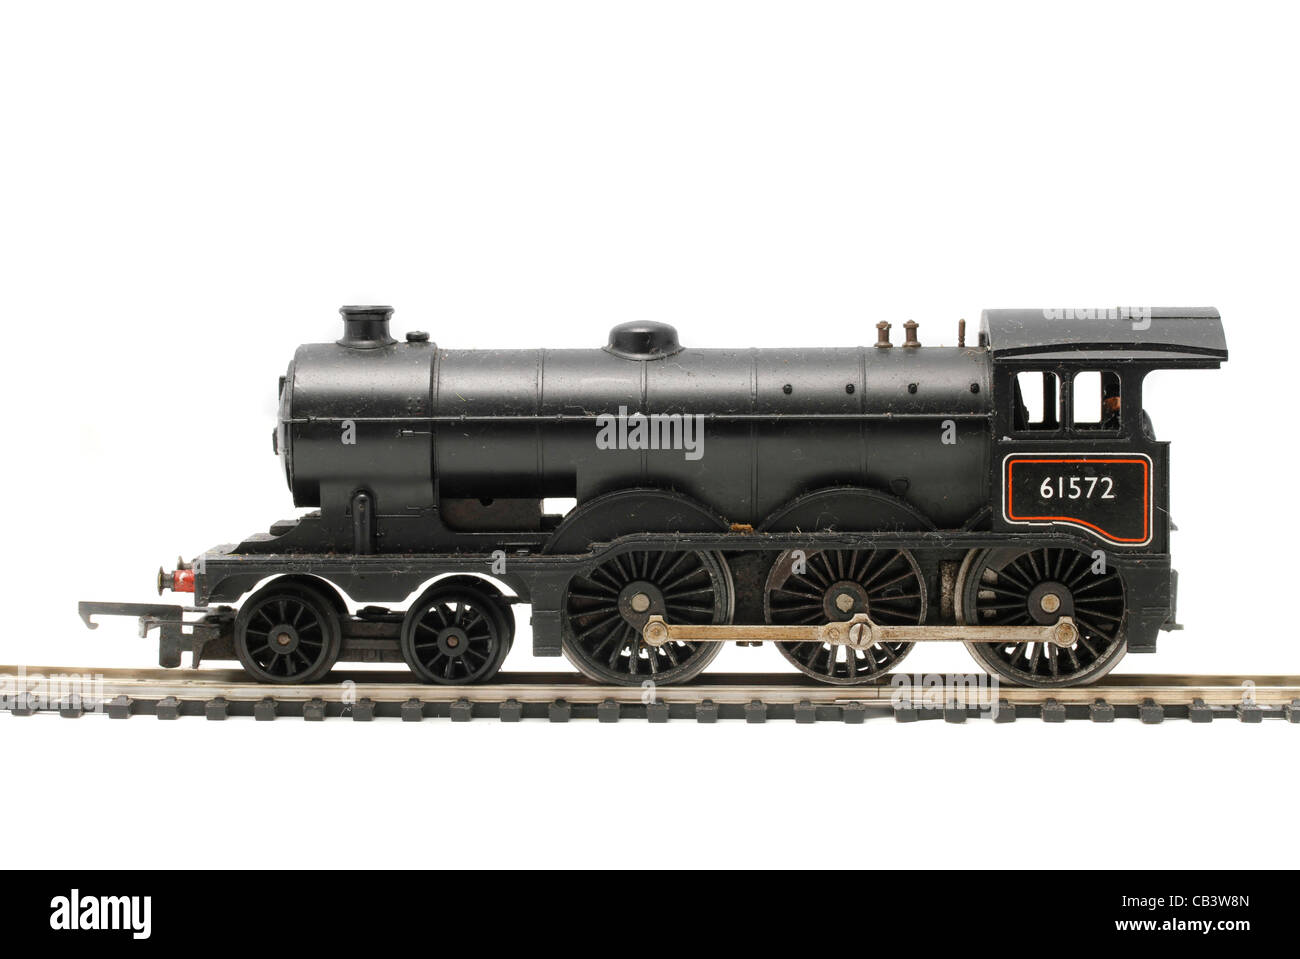 B12 steam locomotive 61572 Triang Hornby Model railway equipment from the sixties and seventies - Stock Image